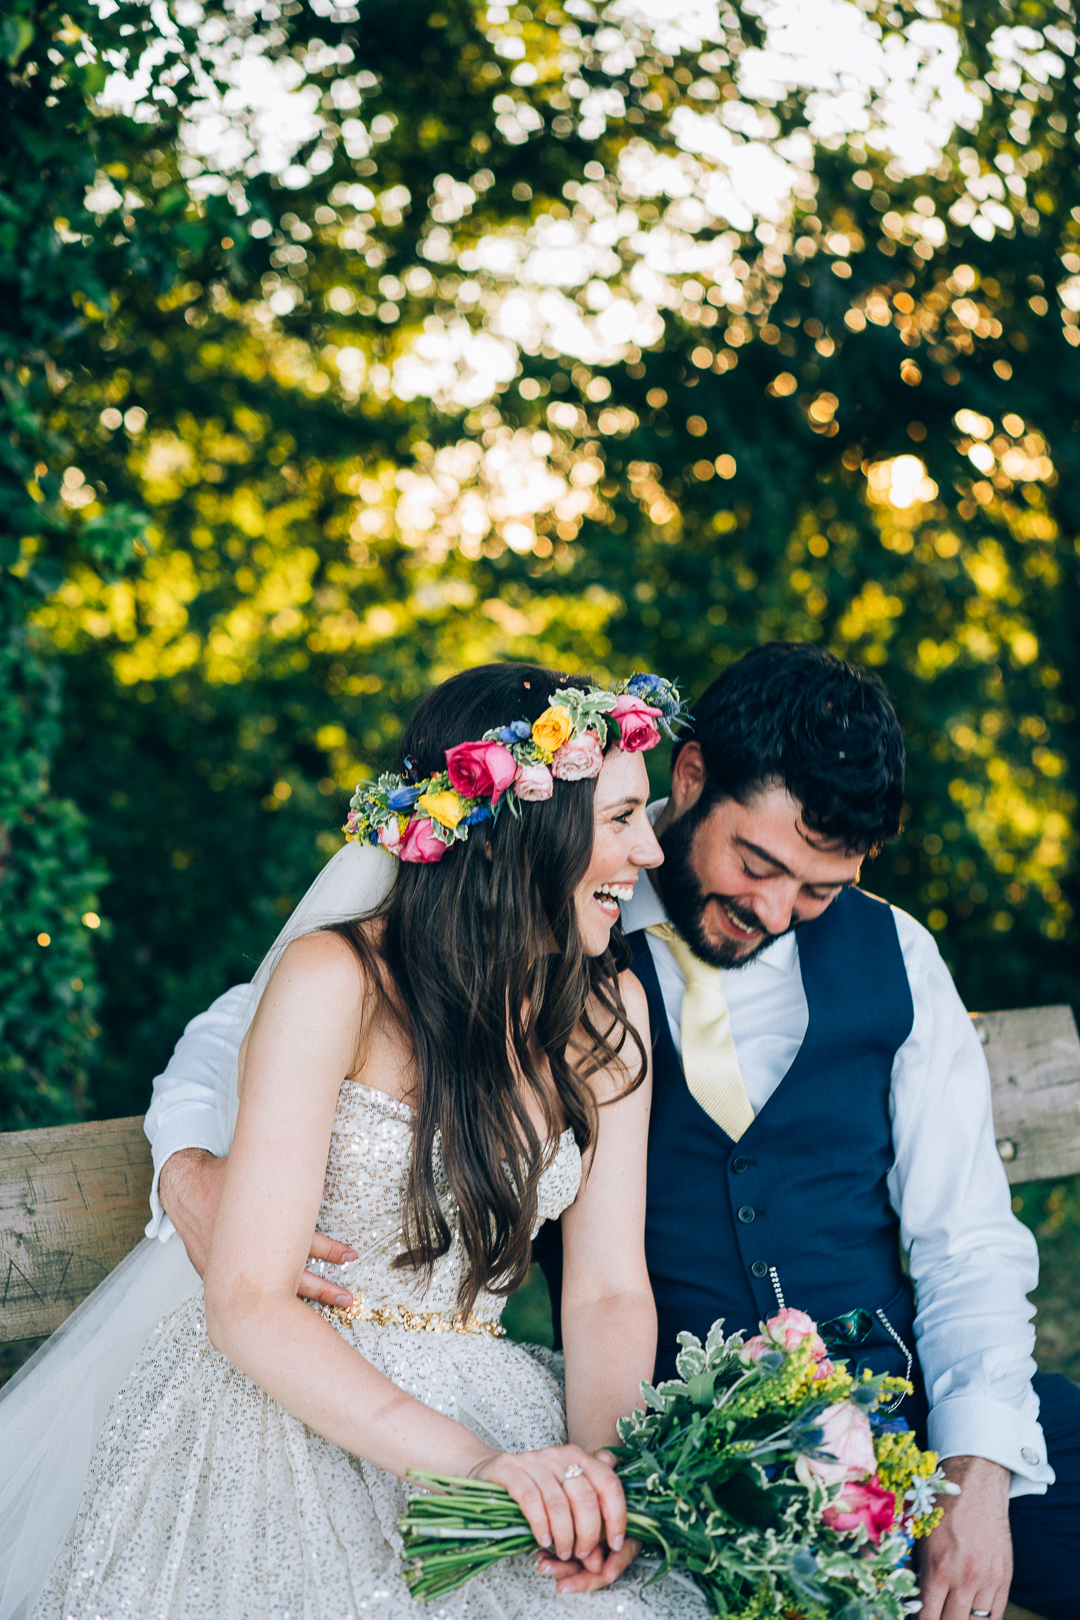 happy fun bride and groom portrait golden sunlight and flower crown image